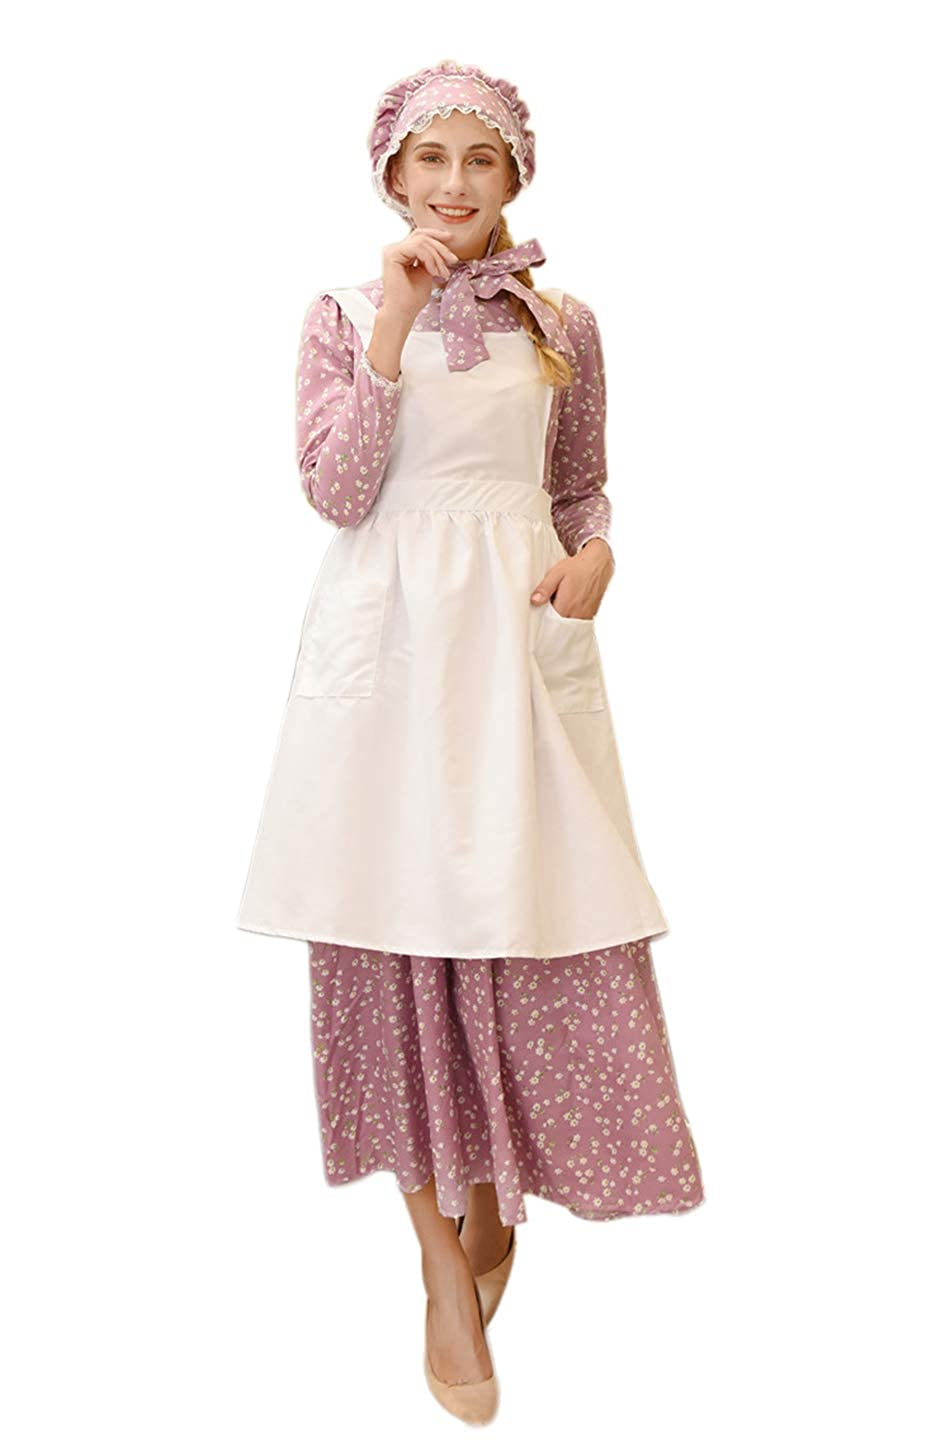 Victorian Dresses | Victorian Ballgowns | Victorian Clothing ROLECOS Pioneer Costume Dress Womens American Historical Clothing Modest Prairie Colonial Dress $43.99 AT vintagedancer.com